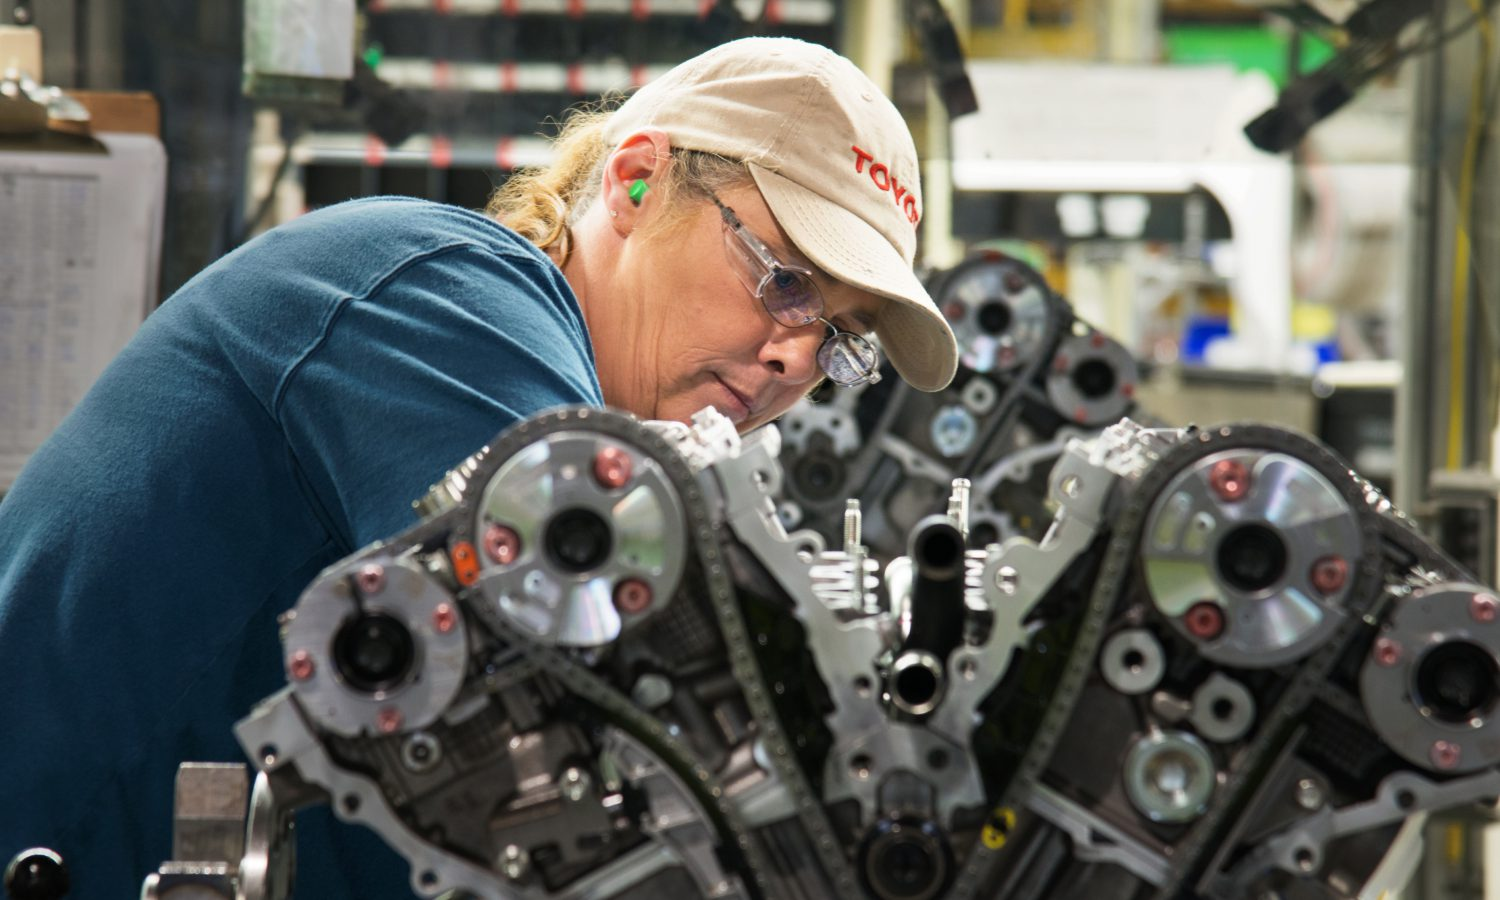 Powered by Passion: Toyota West Virginia Celebrates 20 Years